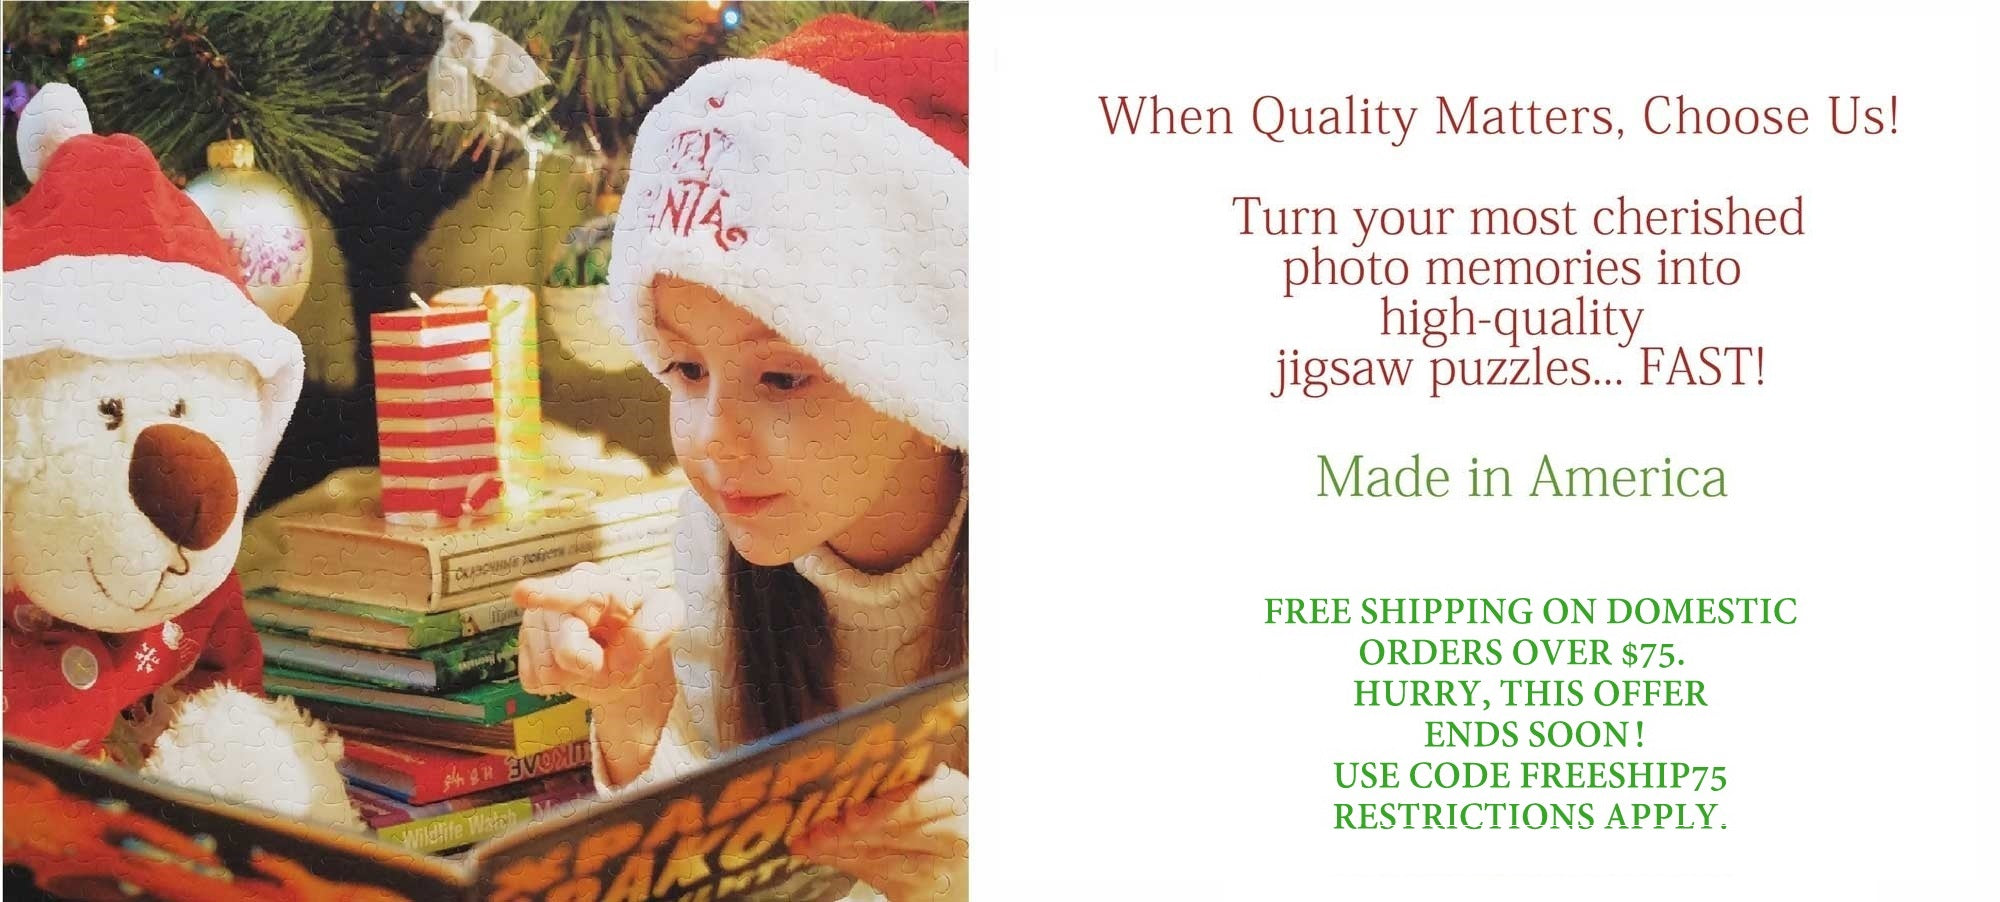 BEST CUSTOM PERSONALIZED PUZZLE FAST MADE IN AMERICA.  BEAR WITH GIRL AT CHRISTMAS ON A CUSTOM PUZZLE